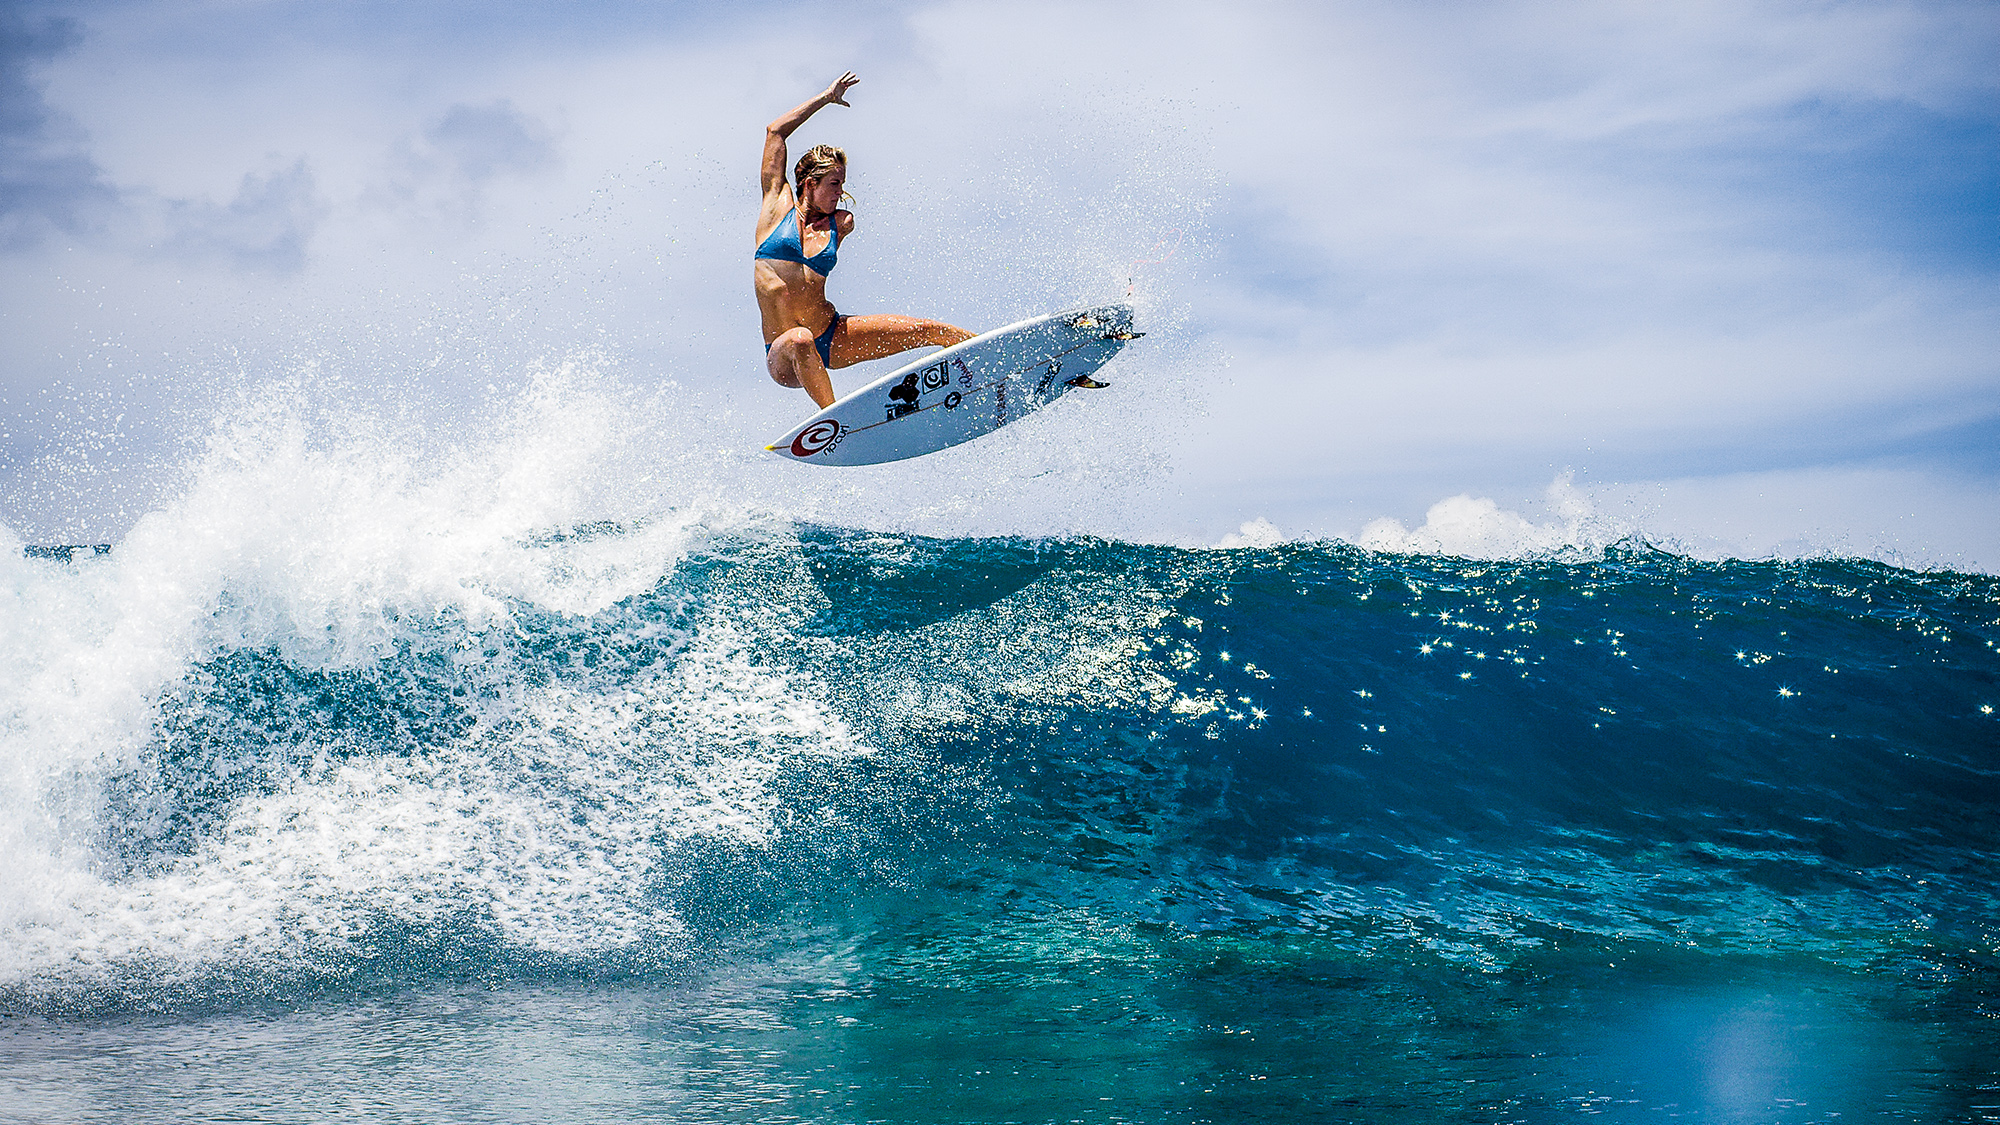 The Bethany Hamilton Profile Surfer Magazine